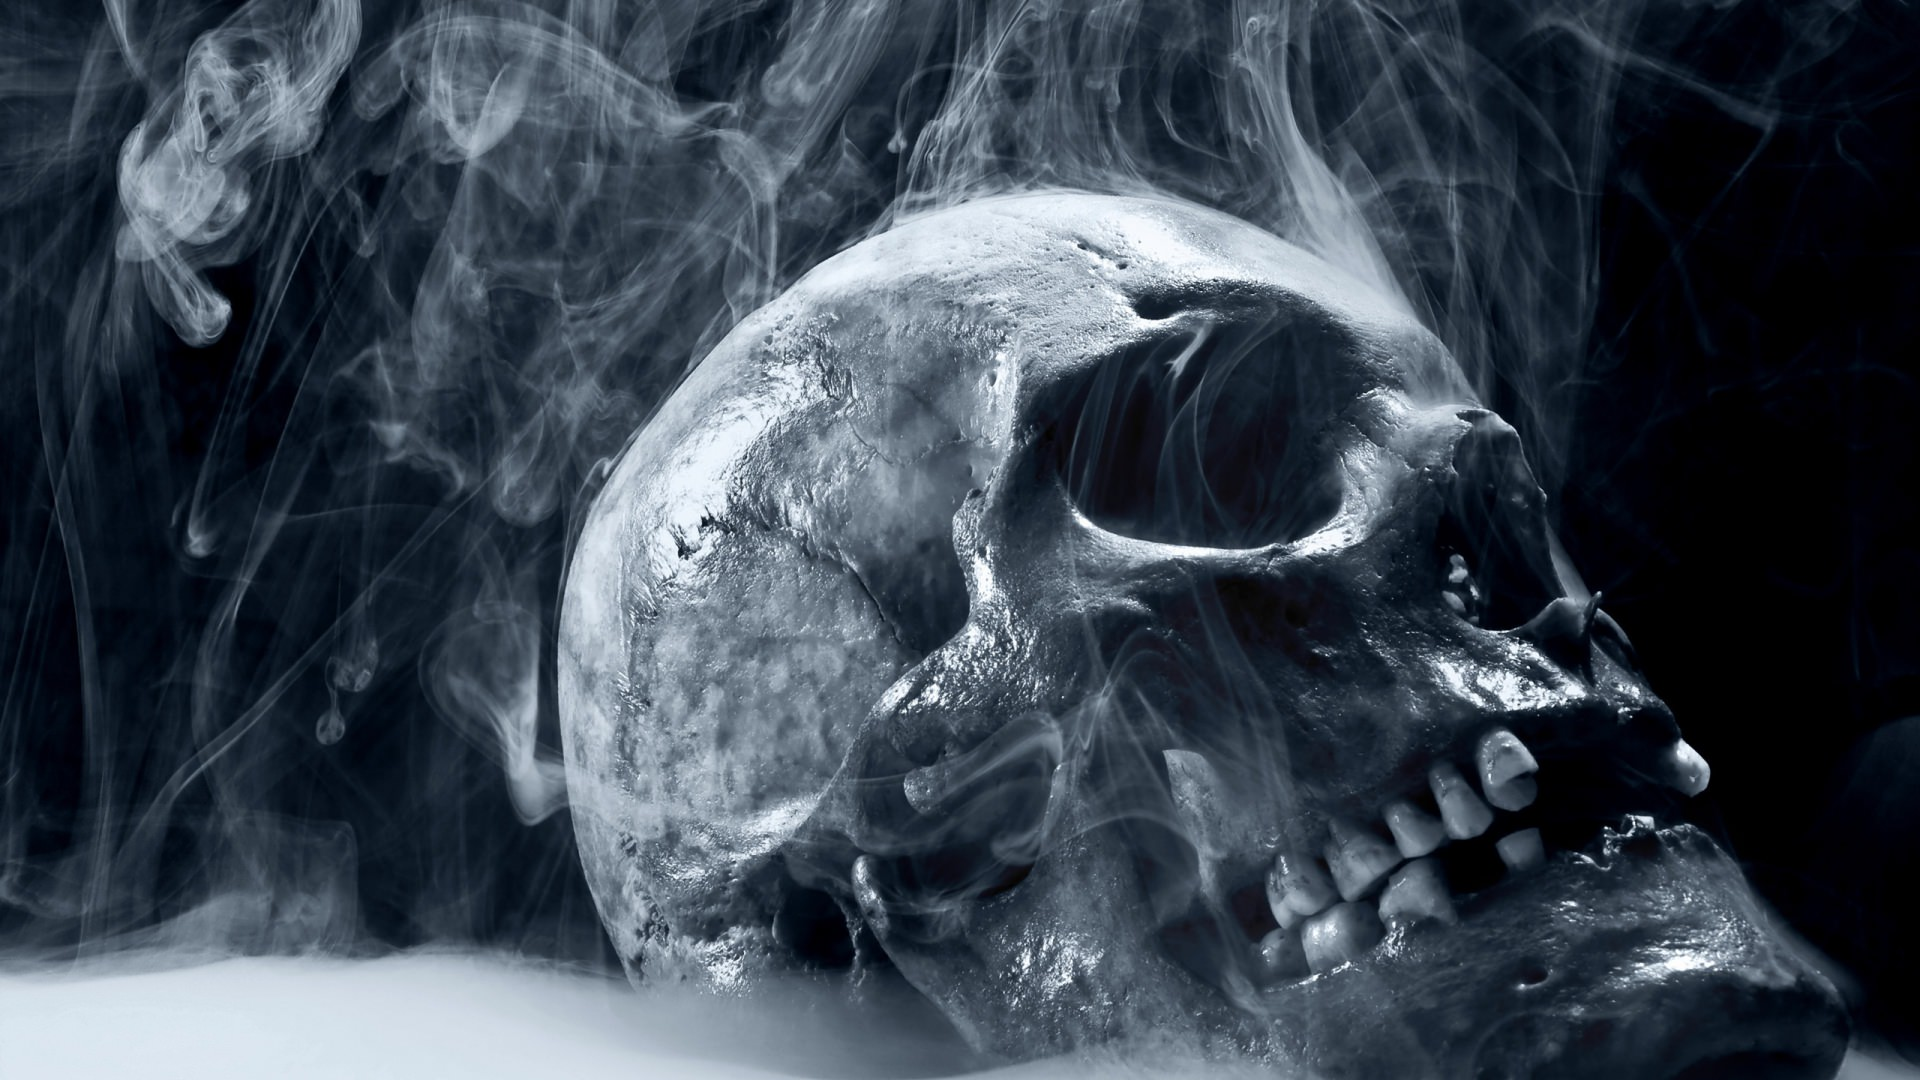 smoke and skull scary wallpaper